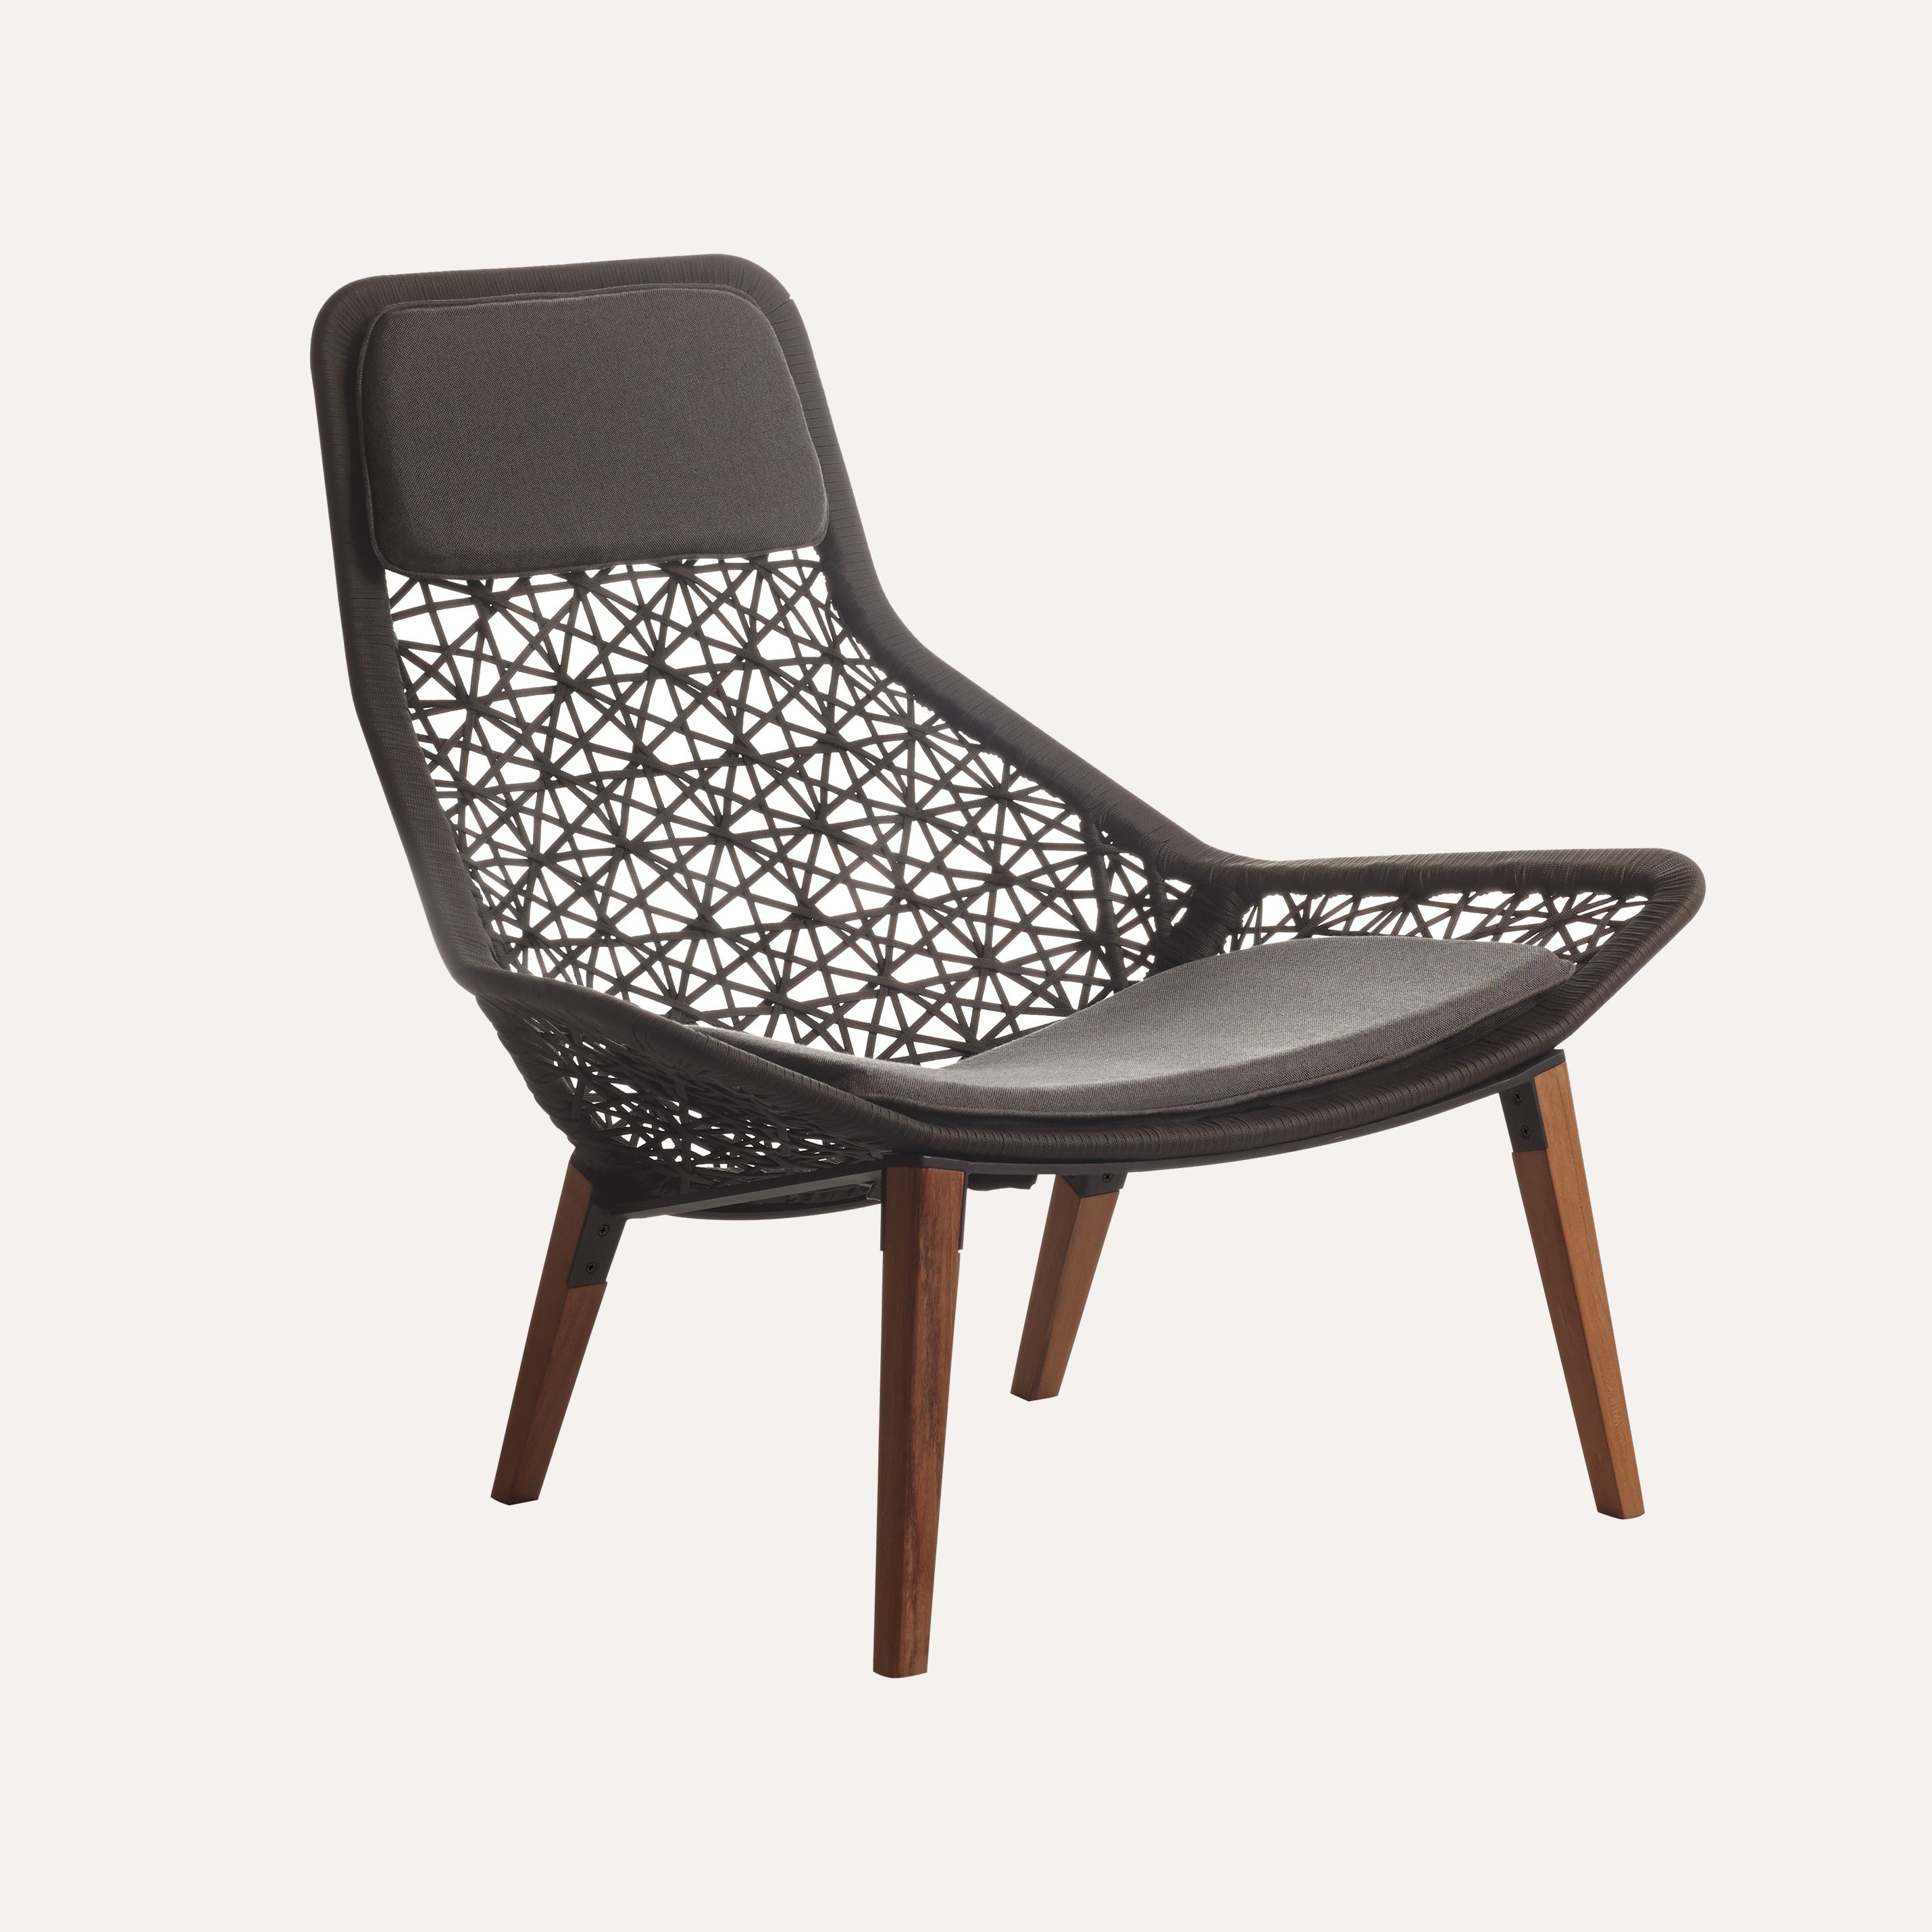 Outdoor kettal maia relax armchair maia rope 22 for Kettal maia chair